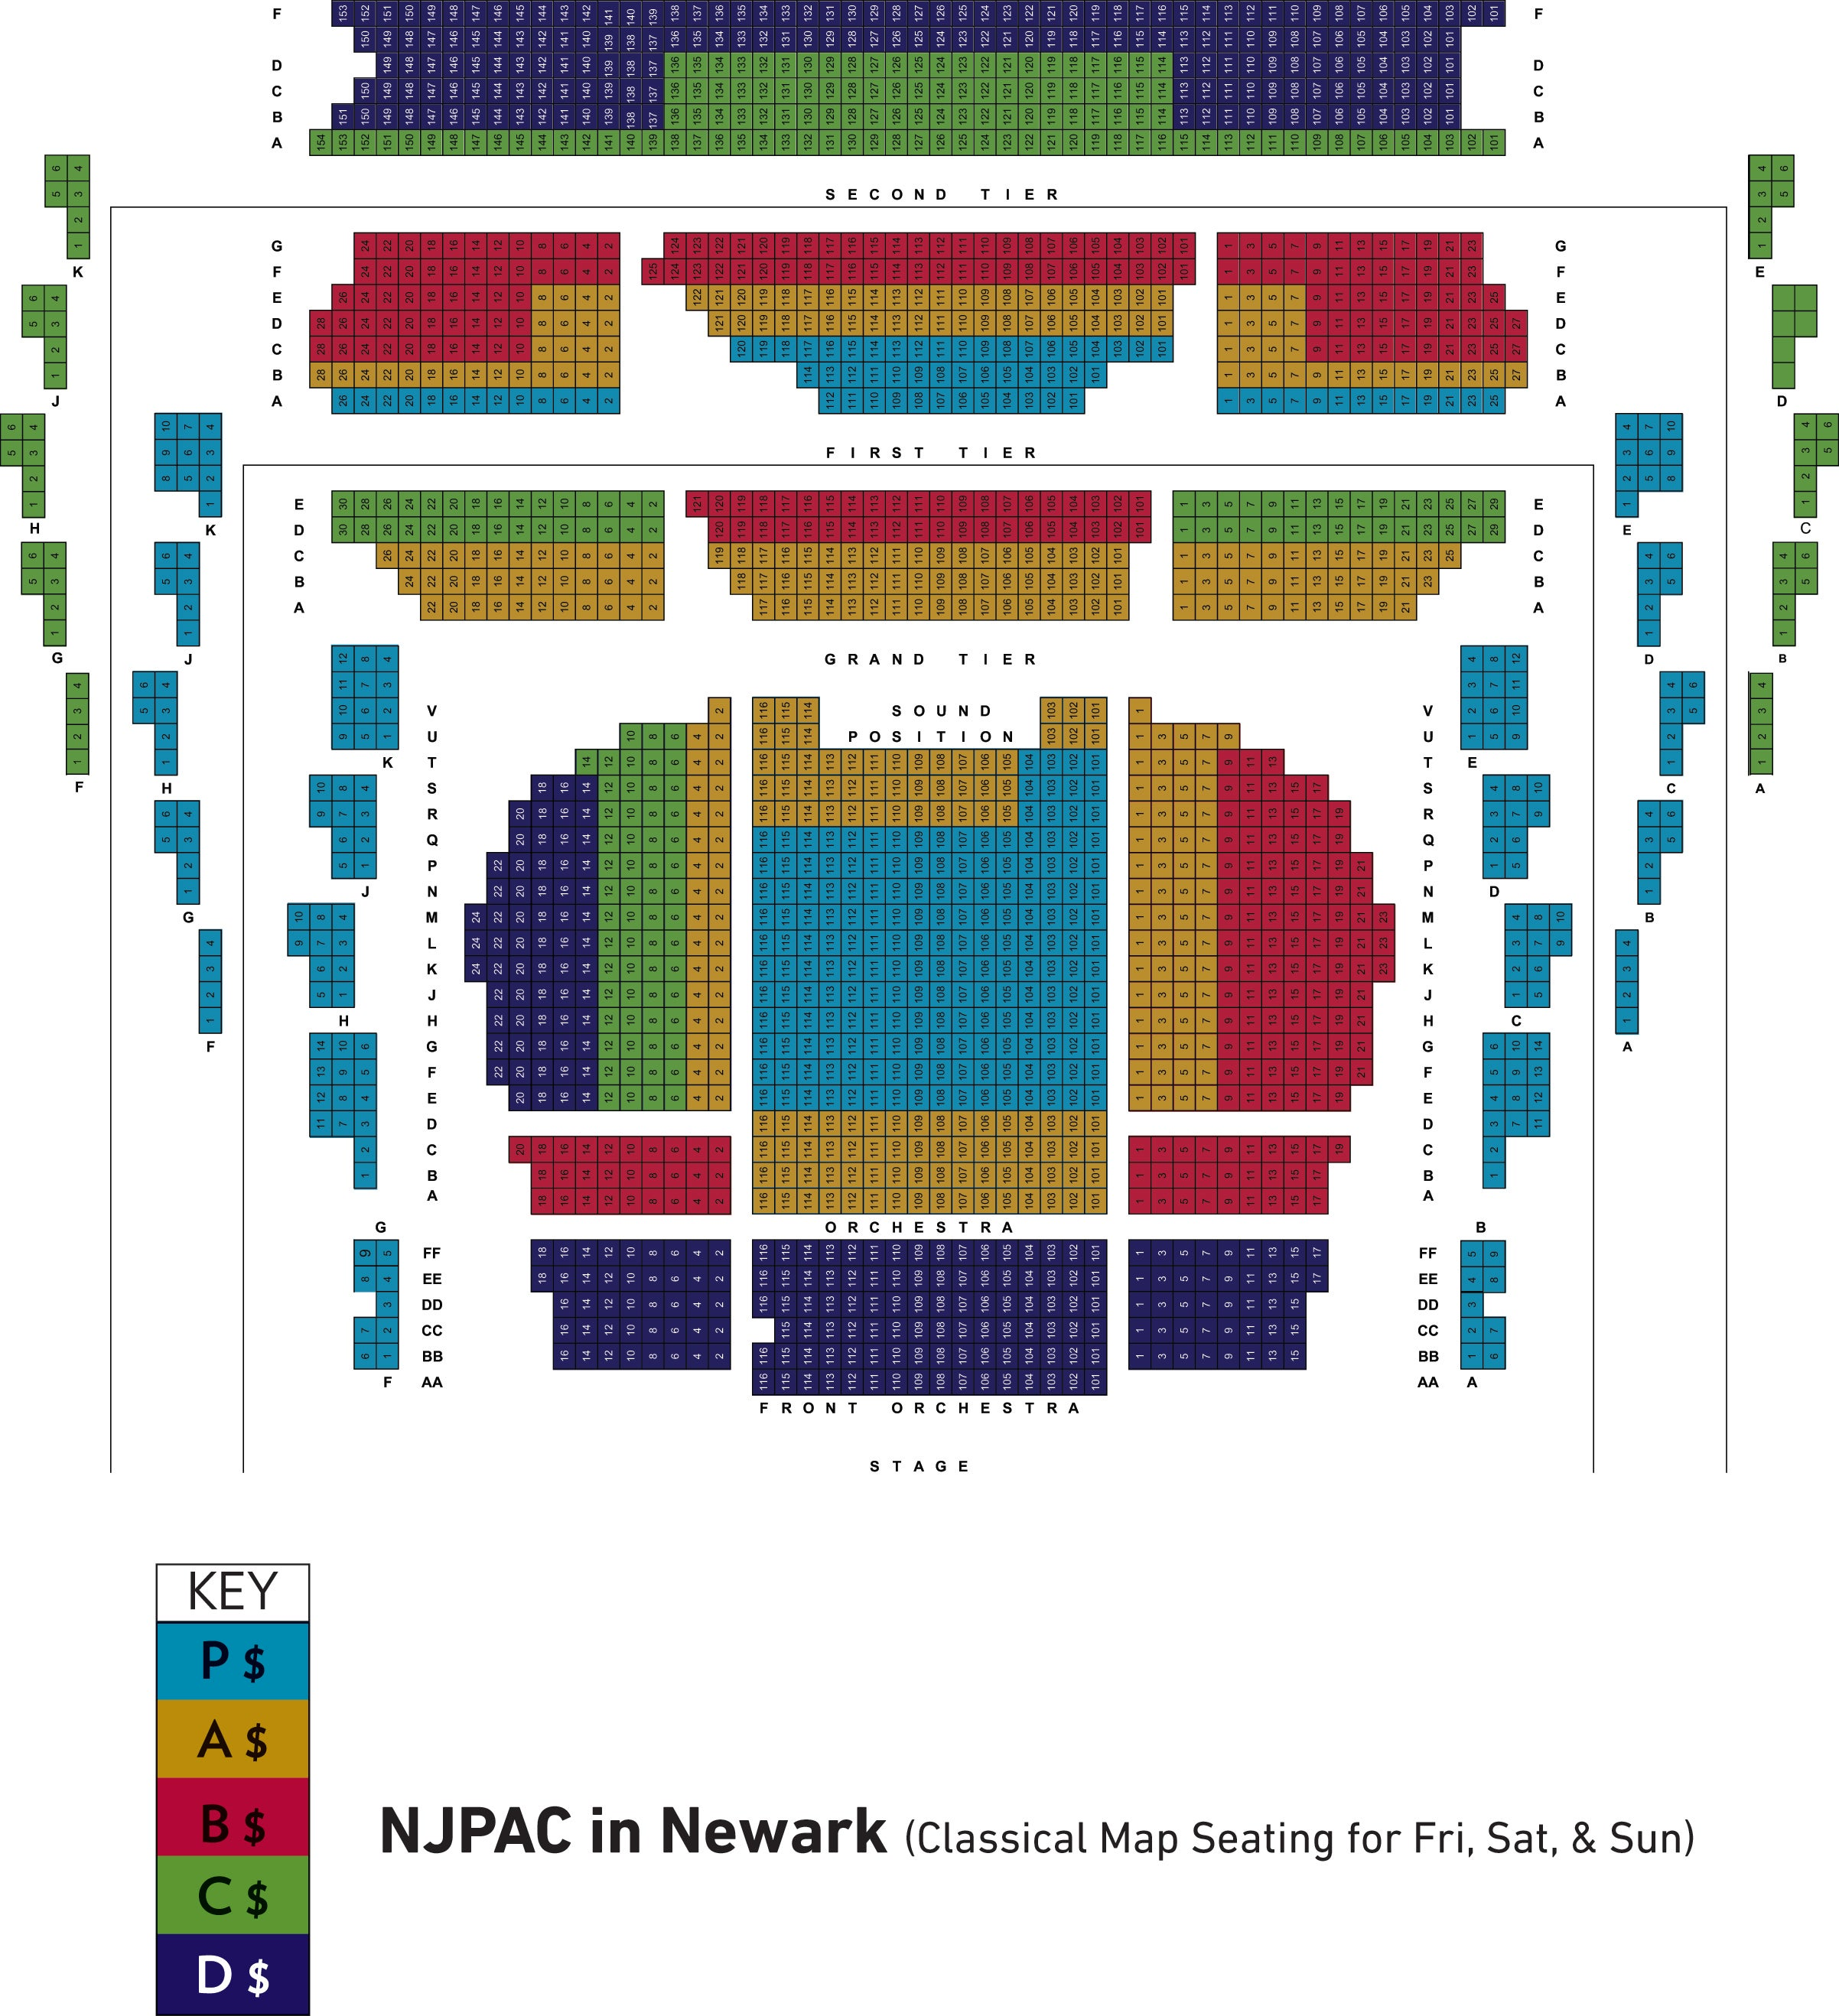 New jersey performing arts center in newark new jersey symphony